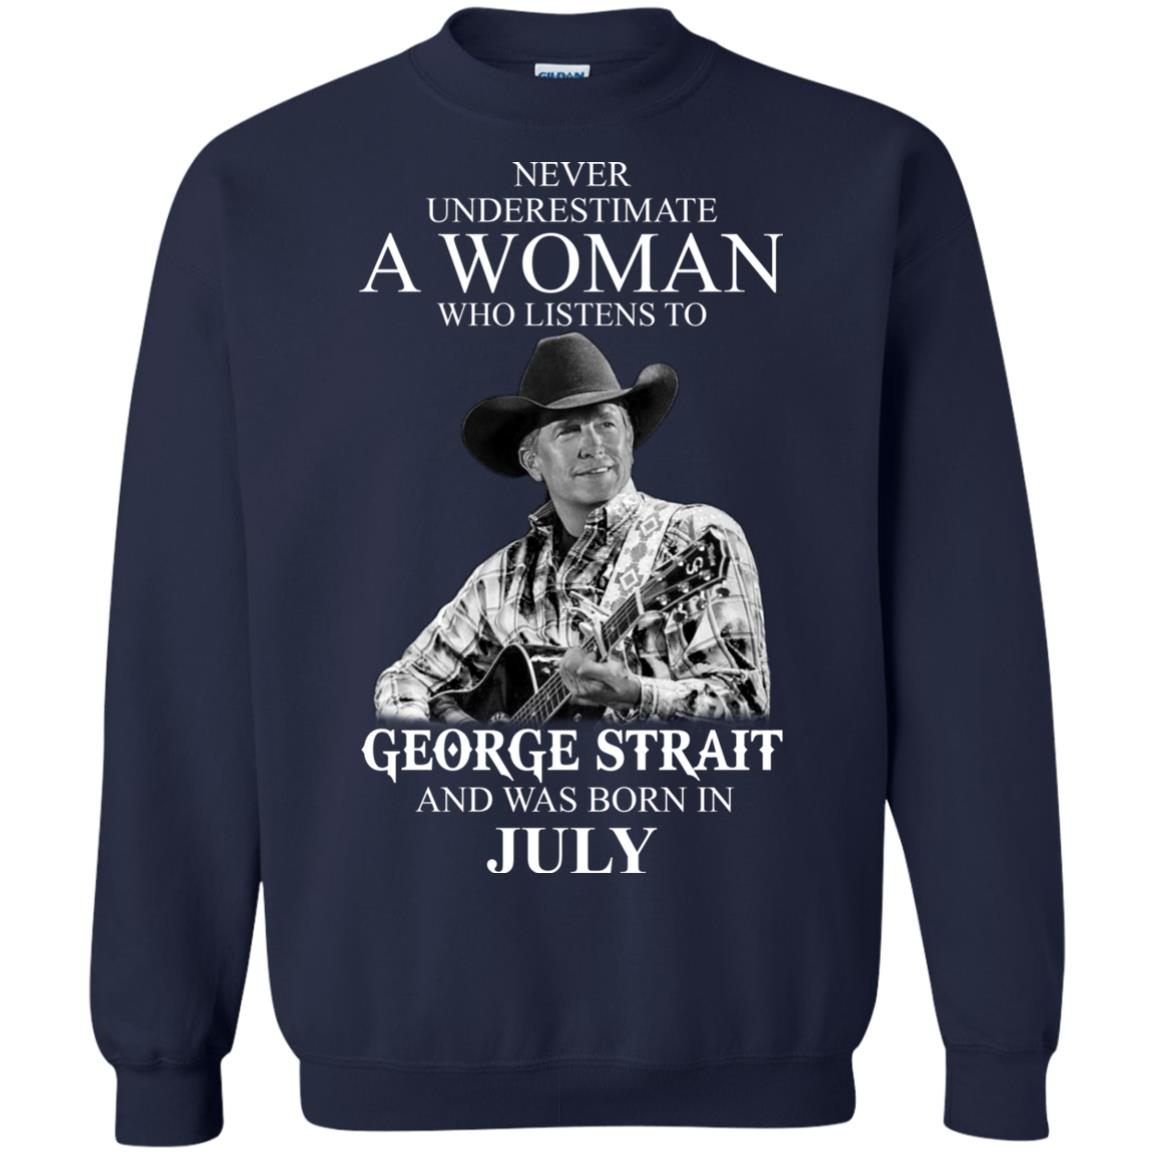 image 405 - Never Underestimate A Woman Who Listens To George Strait And Was Born In July shirt